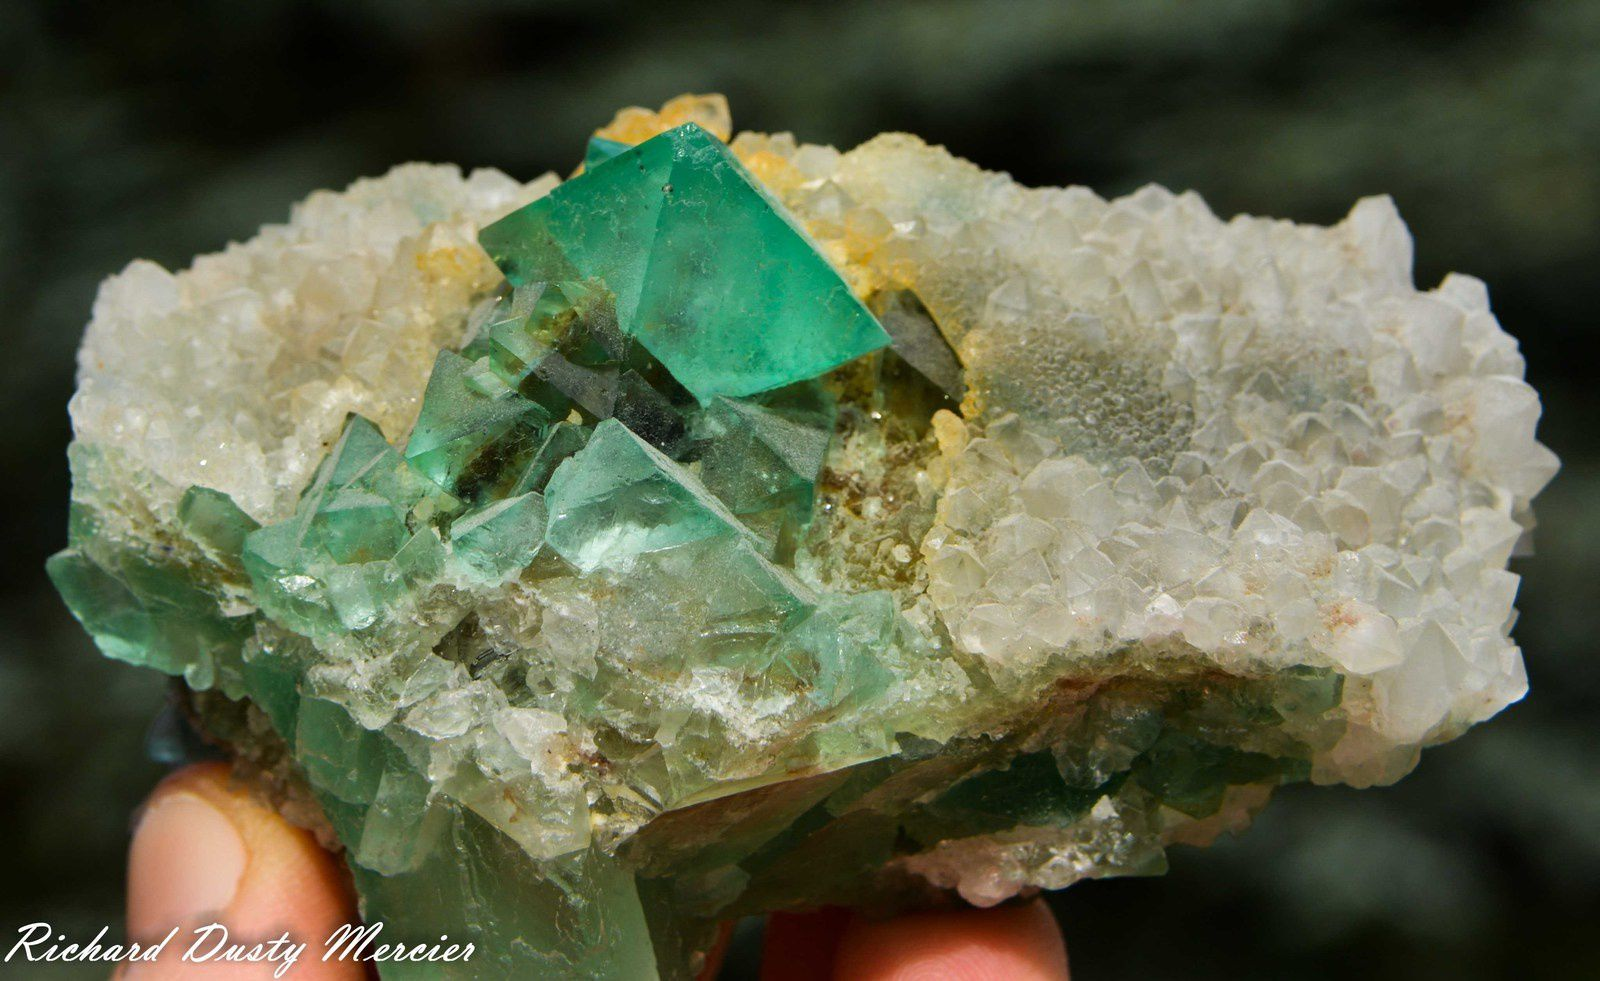 Fluorite (Fluorine) octahedron (Octoédre) on Quartz from Riemvasmaak, South Africa